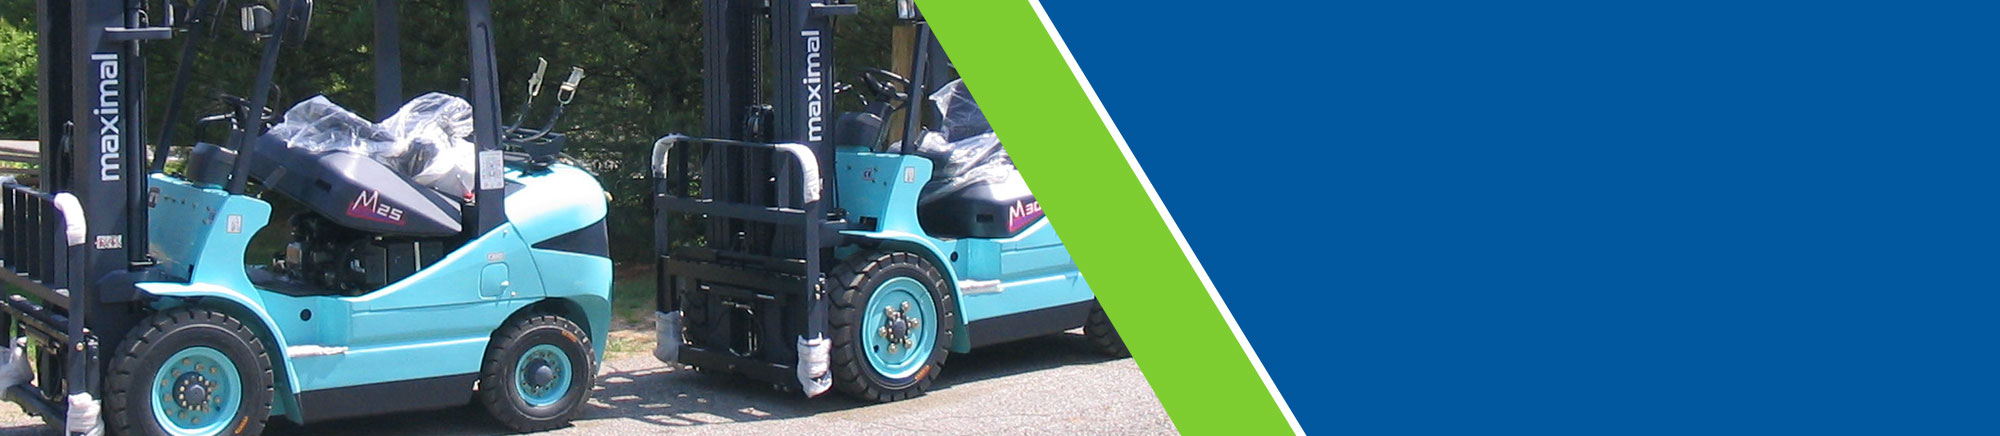 Buy or Rent New Forklifts